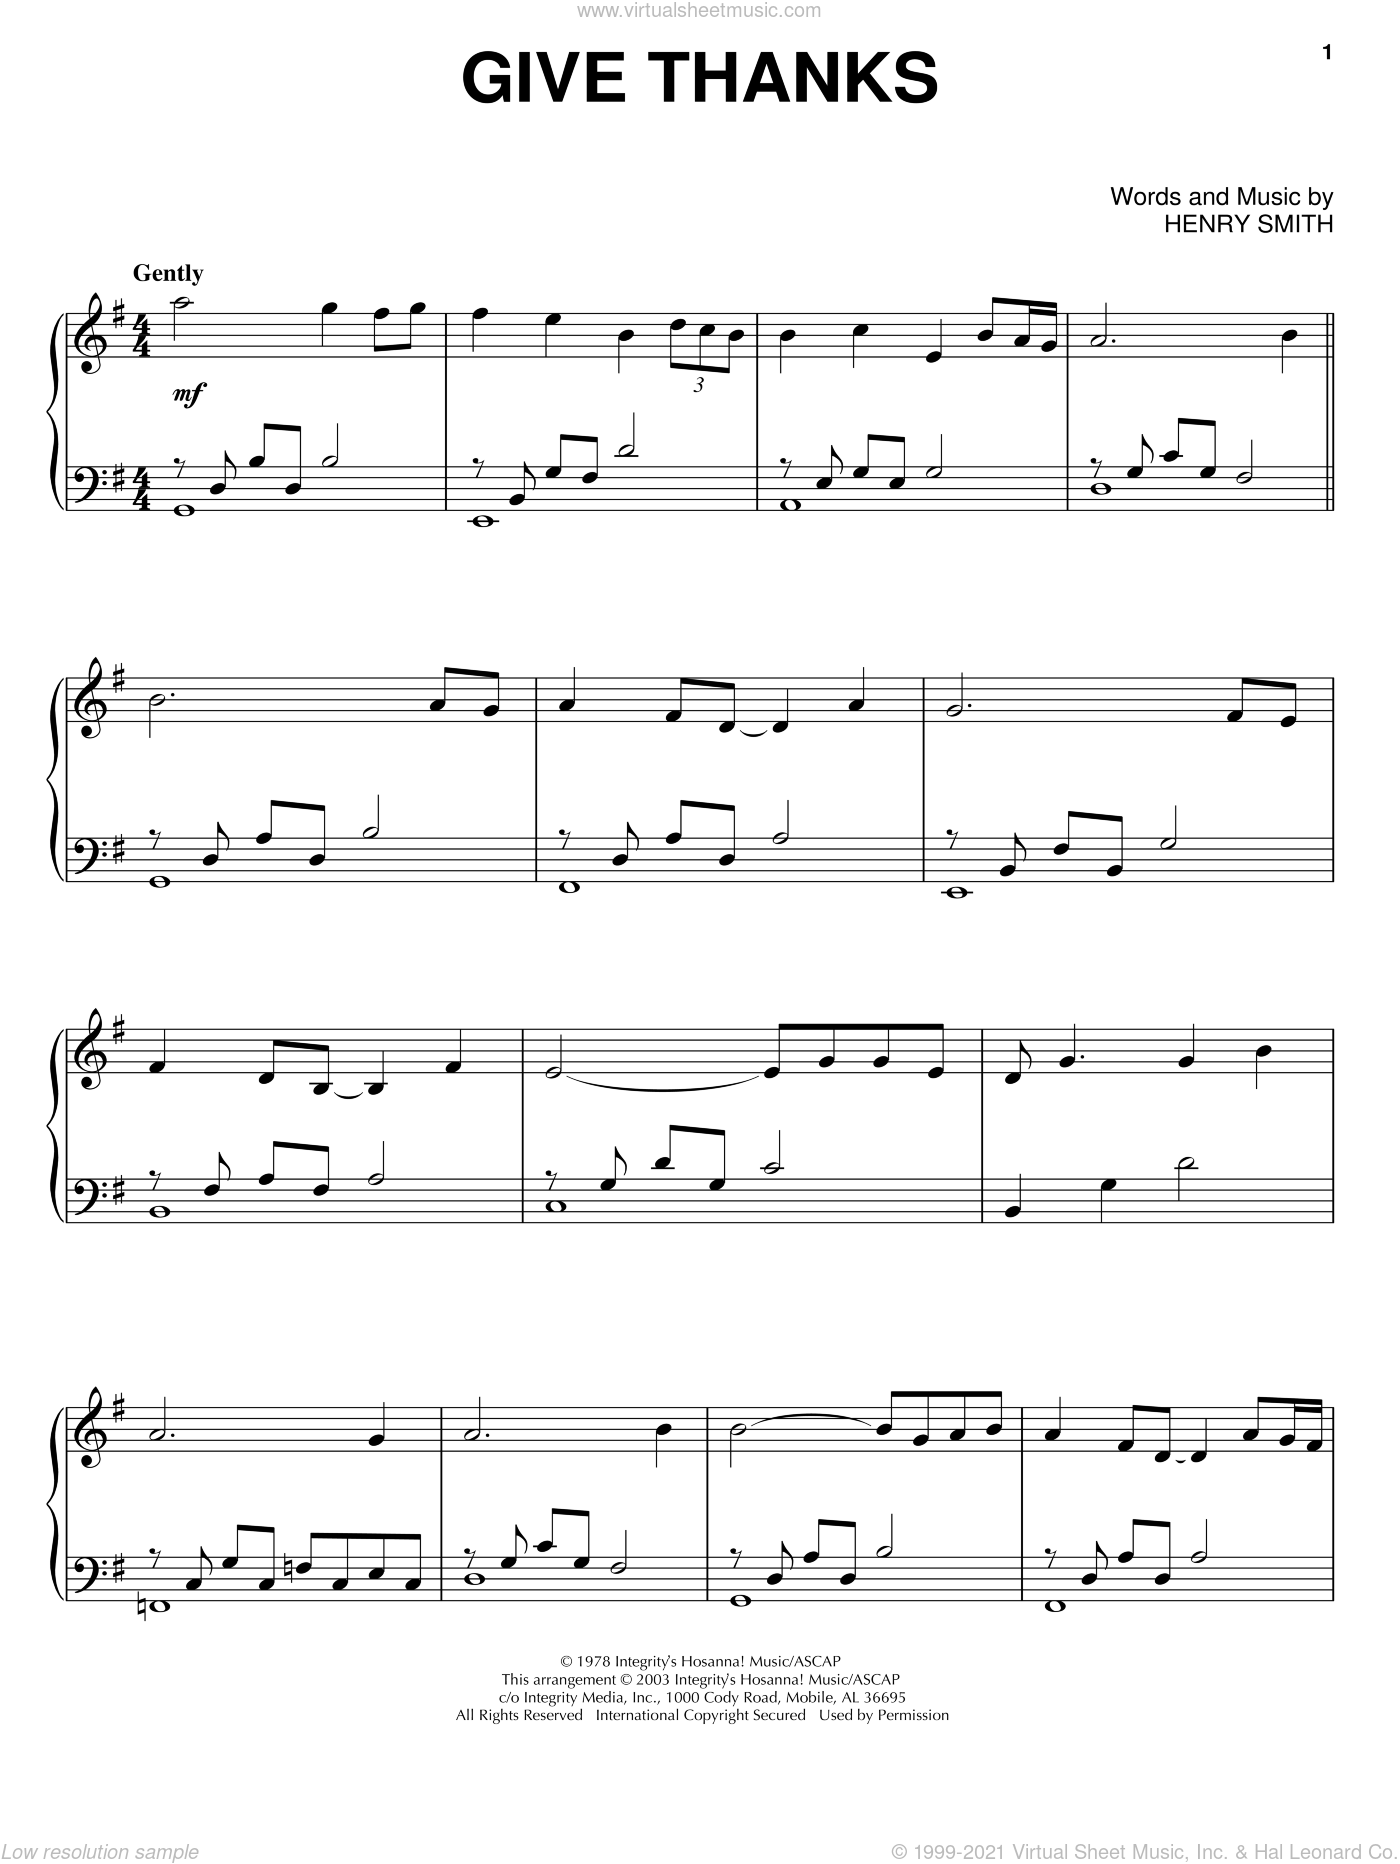 Give Thanks, (intermediate) sheet music for piano solo by Henry Smith, intermediate skill level